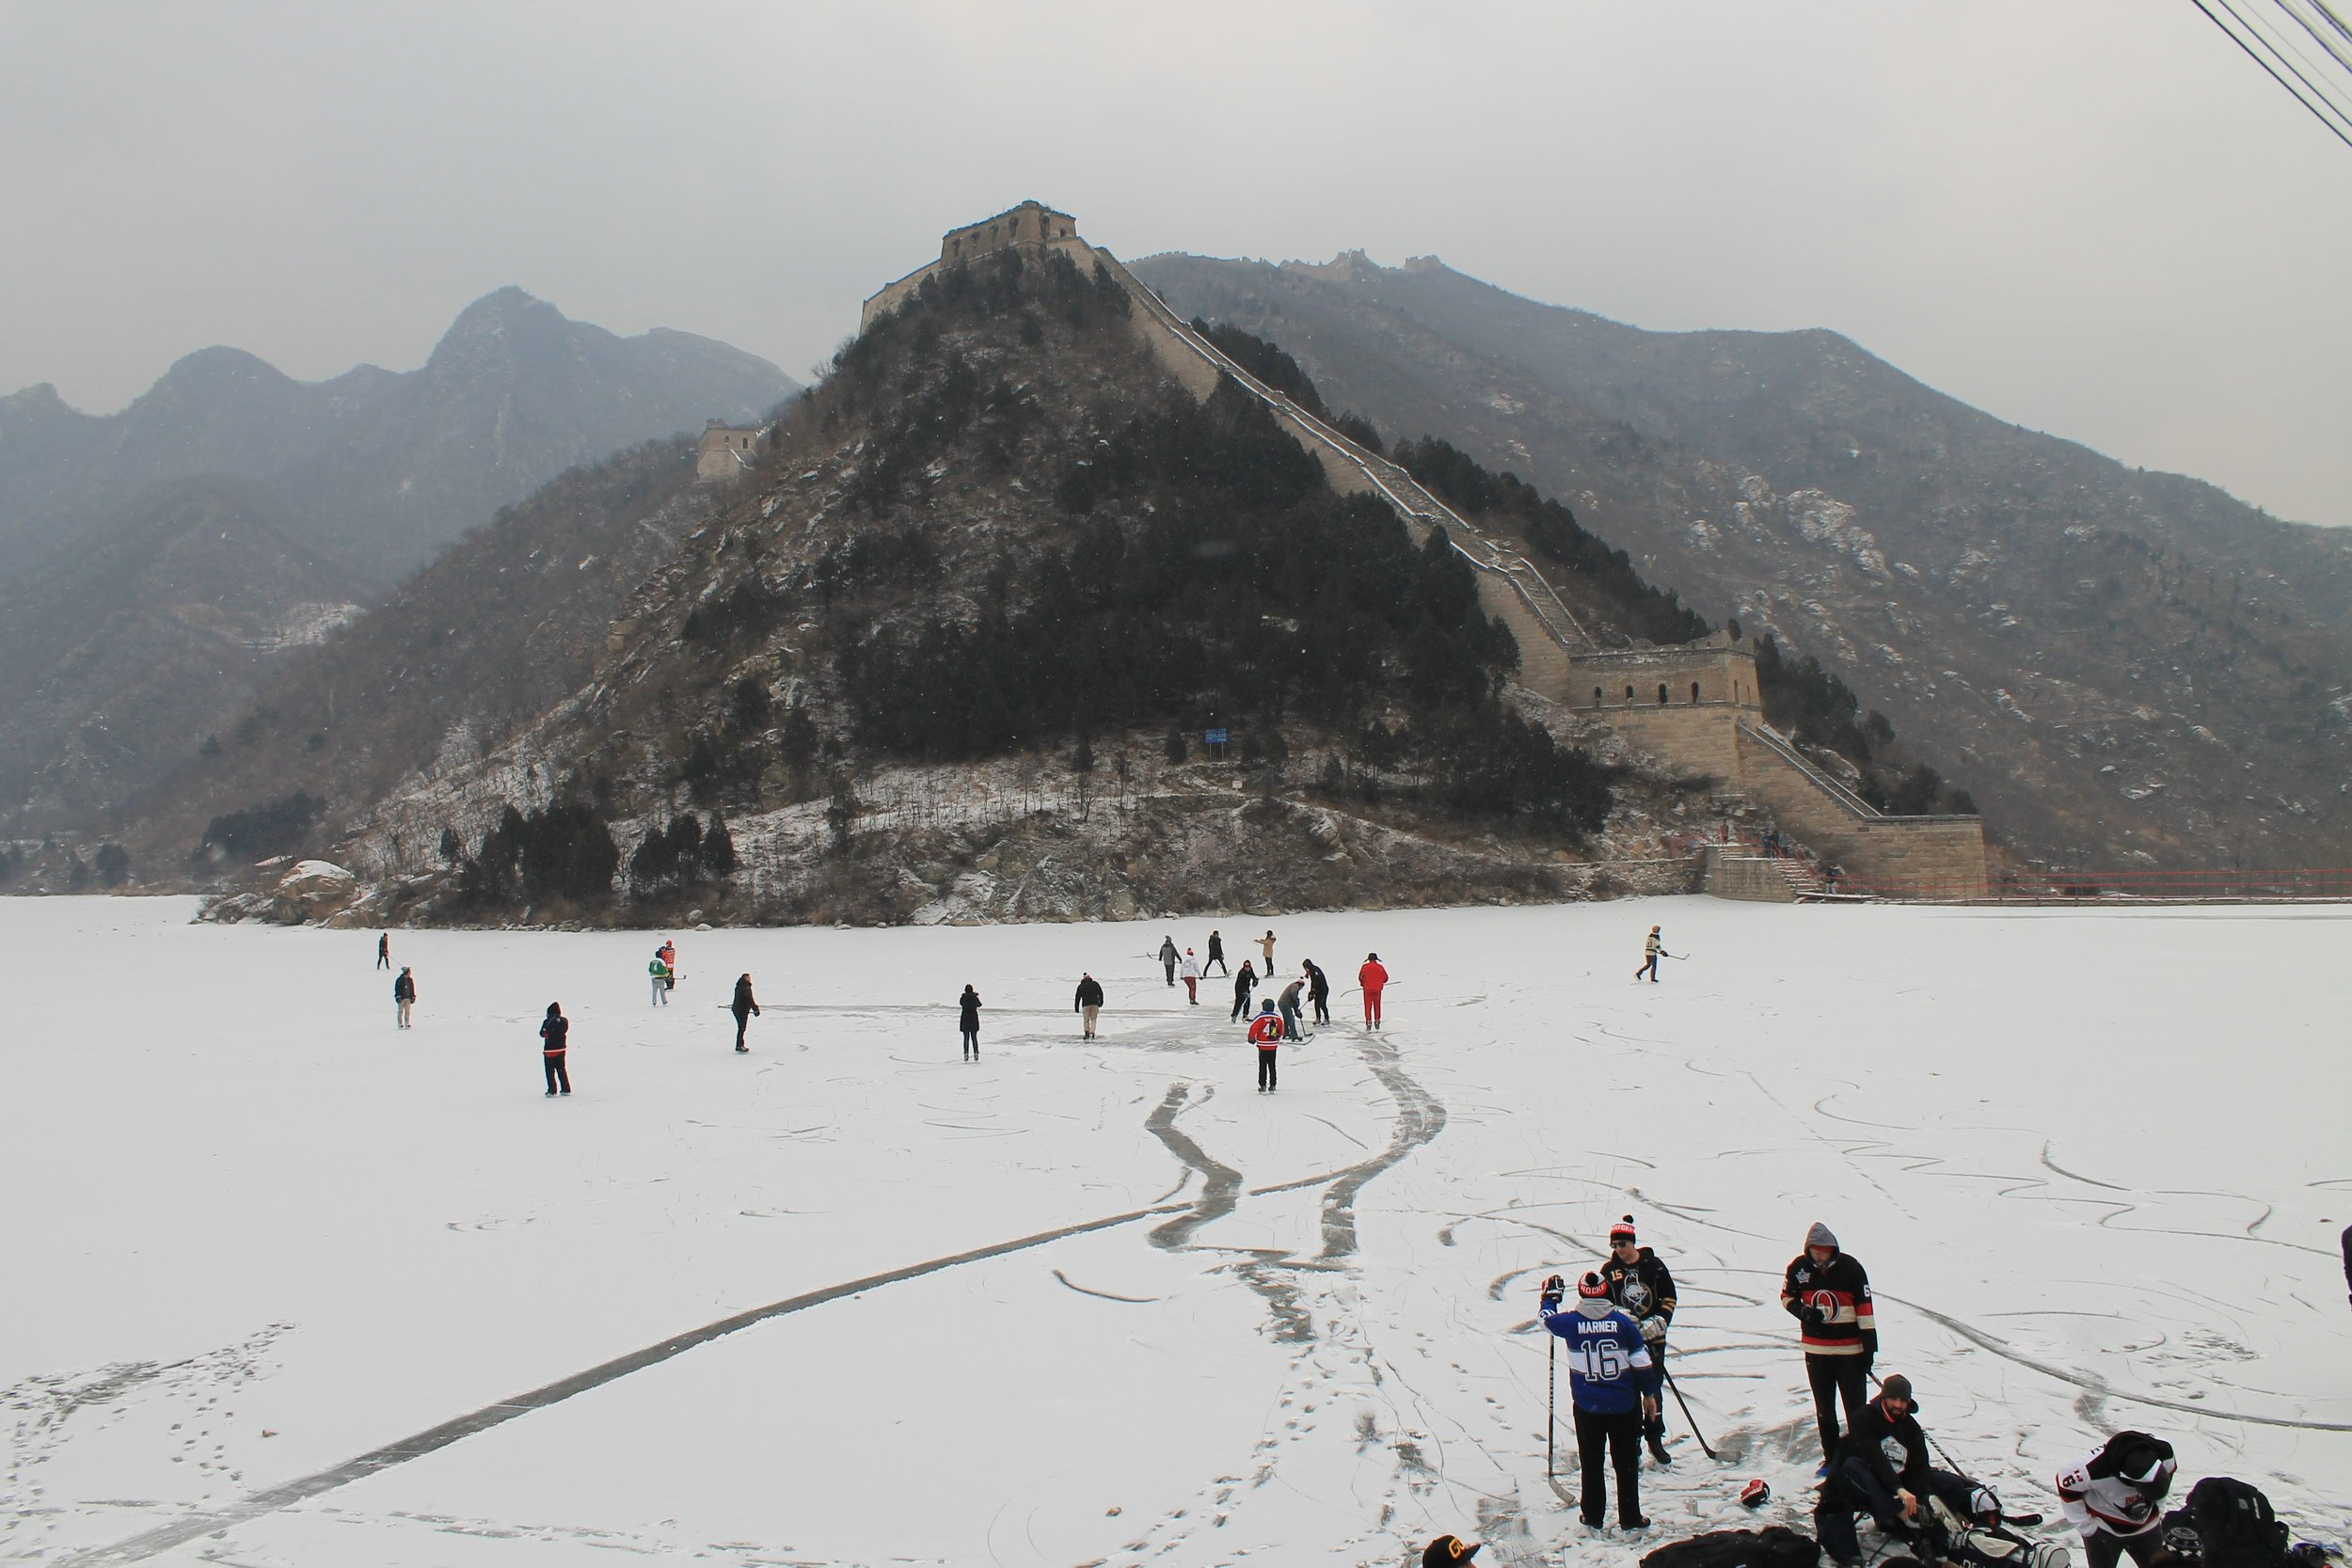 Pond hockey with Chinese flare: Canadian expats and Chinese hockey fans play hockey next to the Great Wall of China |  JONATHAN RALPH VIA TSN